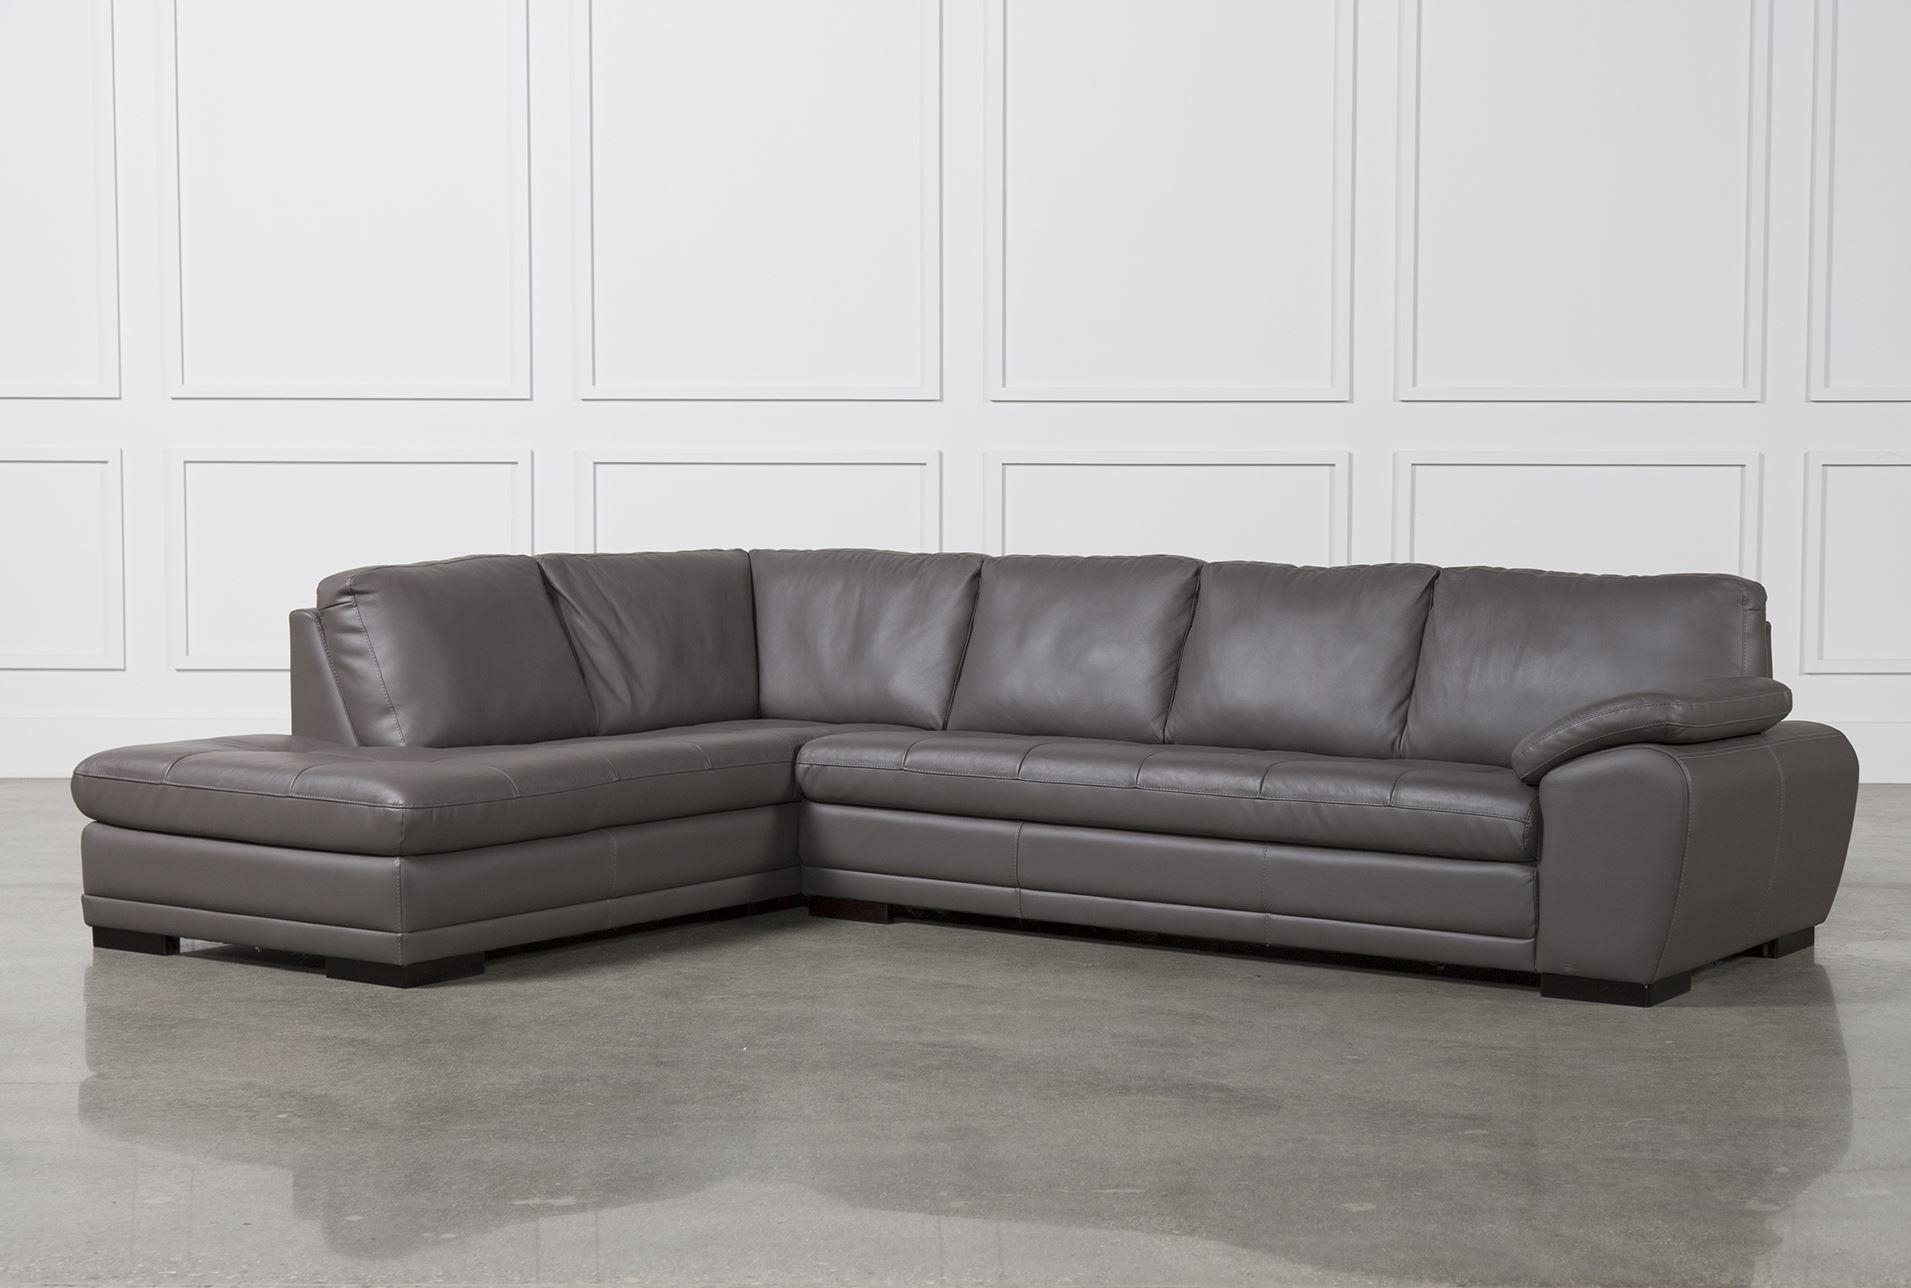 Furniture: Sectional Sofas Mn | Schnidermans | Craigslist Tables With Craigslist Sectional Sofas (Image 7 of 20)